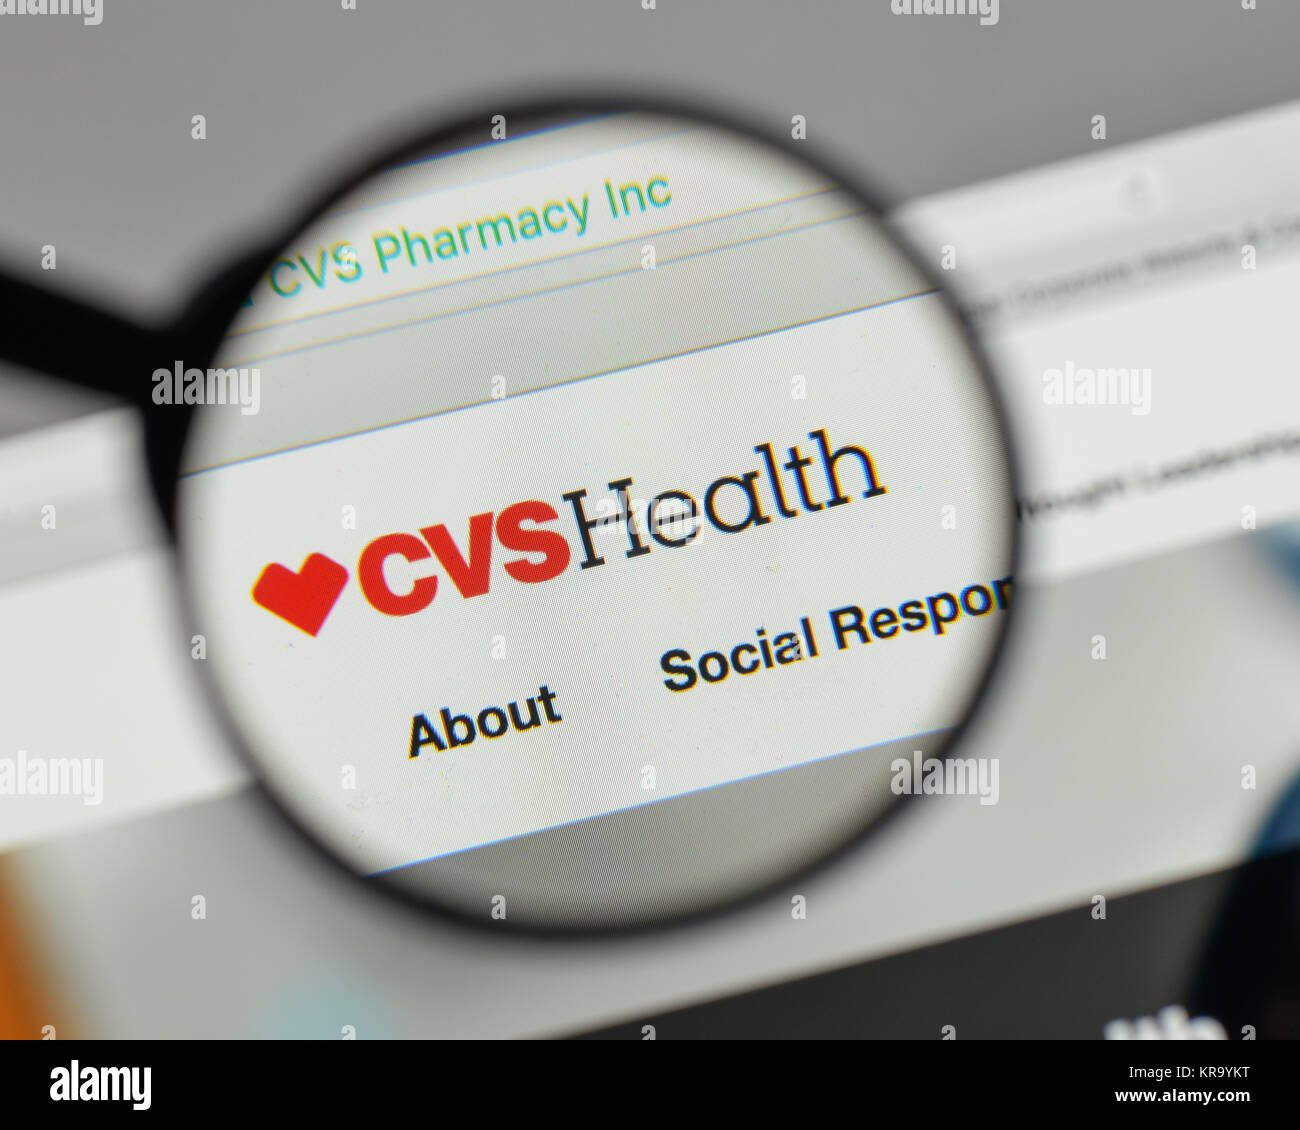 cvs website stock photos  u0026 cvs website stock images